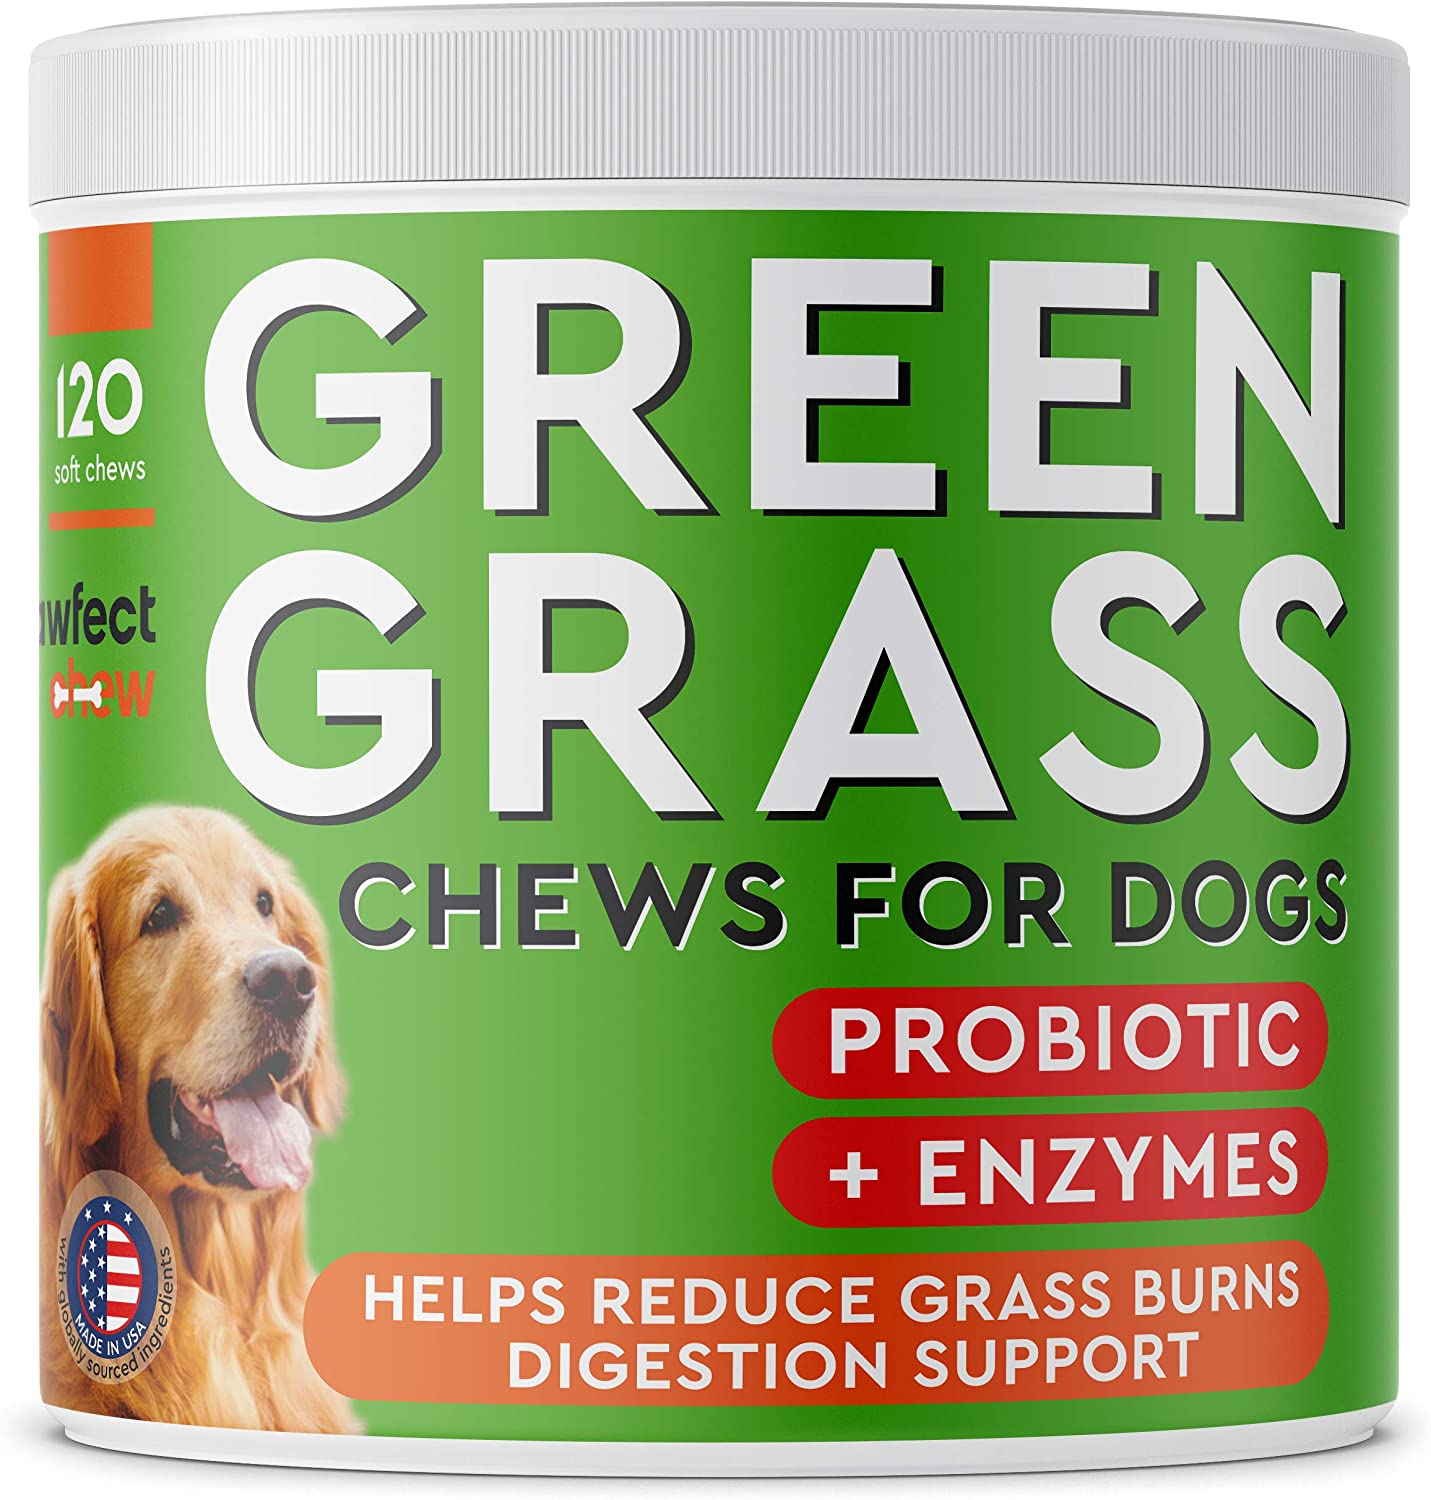 PAWFECTCHEW Dog Pee Grass Saver - Grass Treatment for Dog Urine - Dog Urine Neutralizer for Grass Burn Spots - Dog Pee Lawn Repair Treats with Probiotics - Made in USA